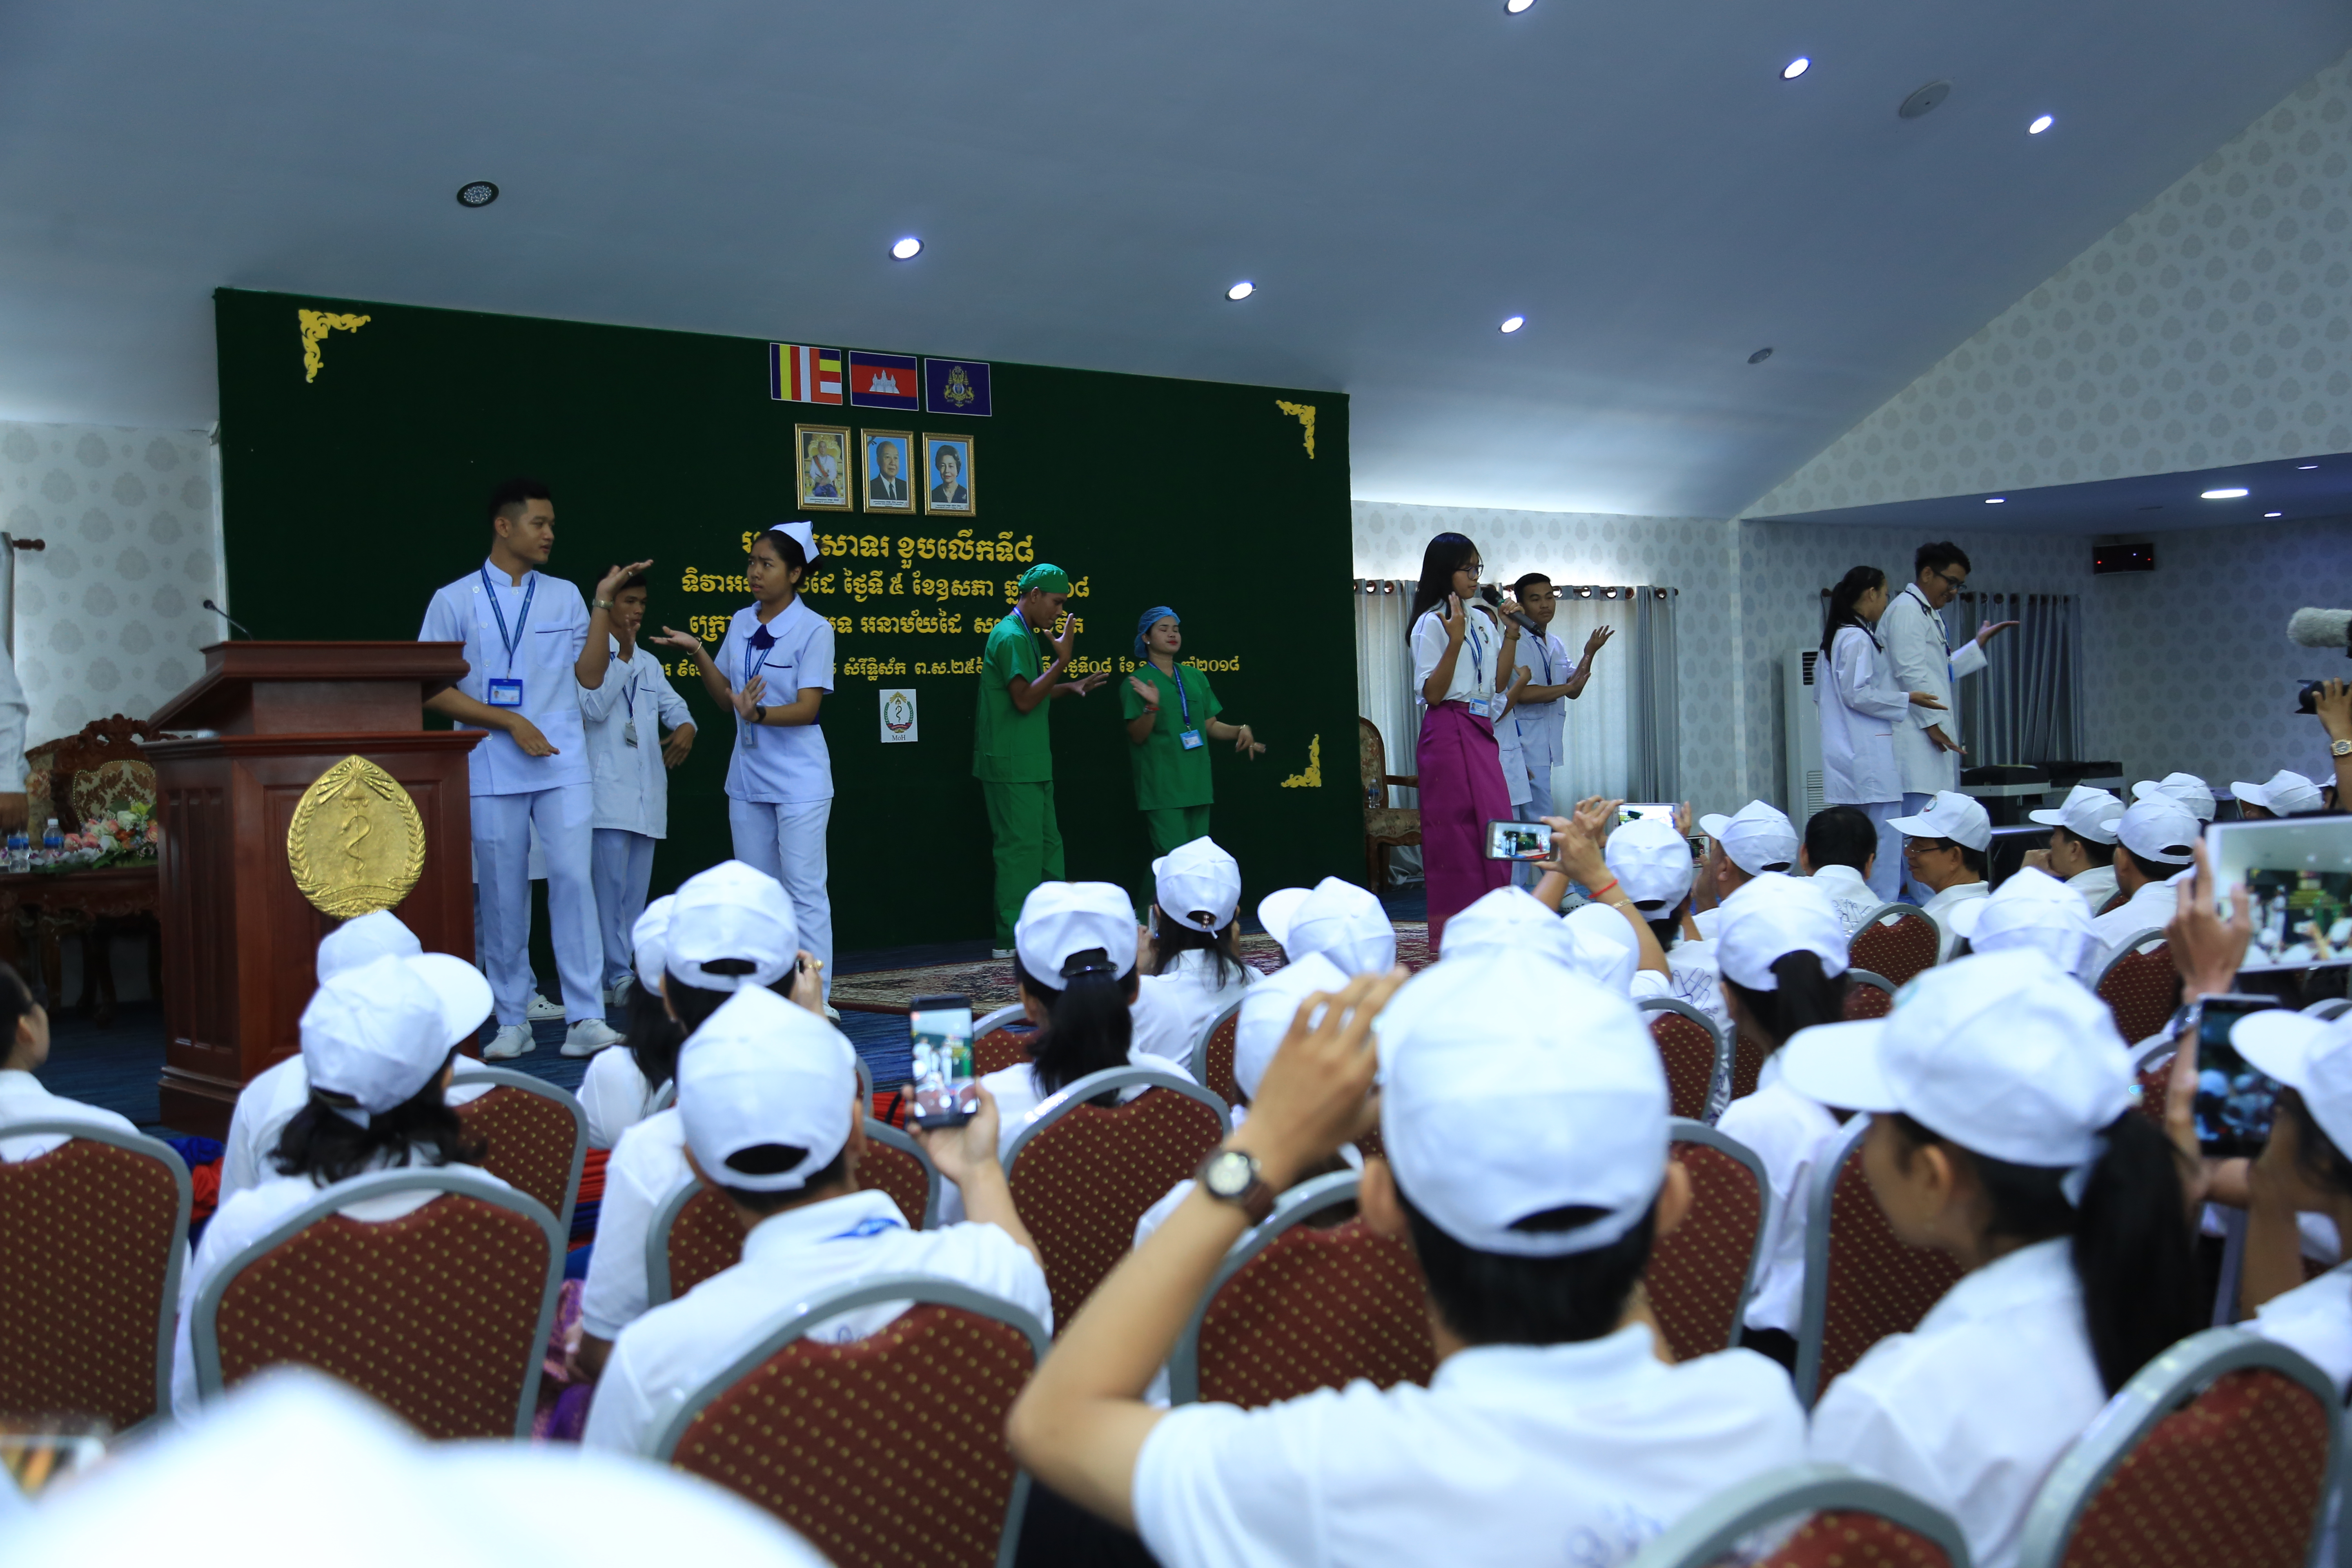 UHS Sabay group performing the hand hygiene song on National Hand Hygiene Day at the Ministry of Health